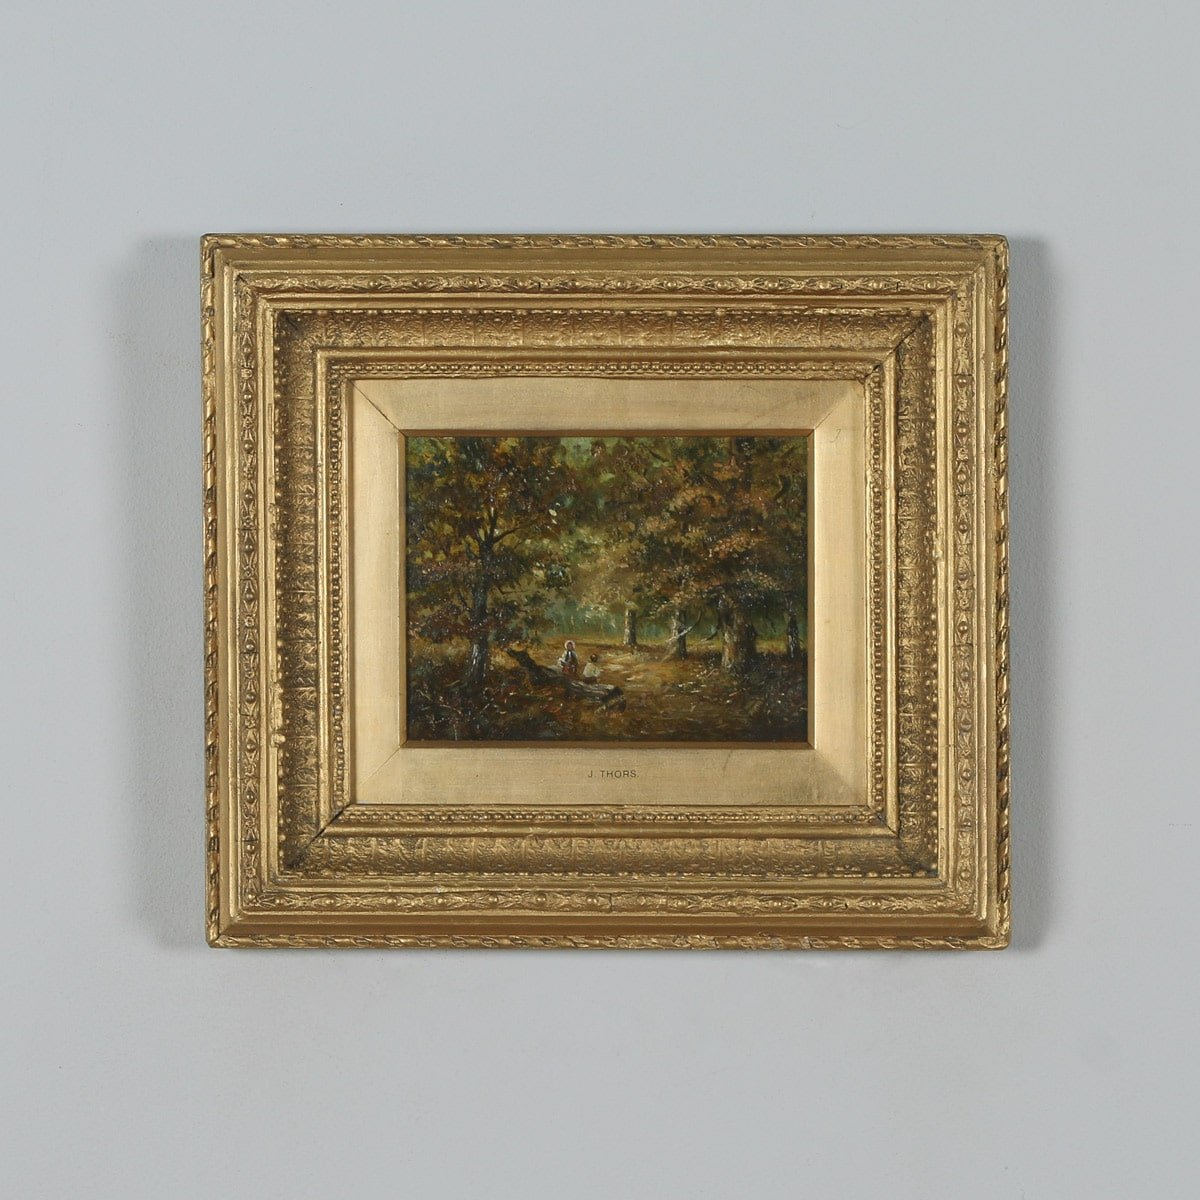 1cb9833587fa Antique English Small Oil Painting of Autumnal Forest Country Scene  Attributable to Joseph Thors (Circa